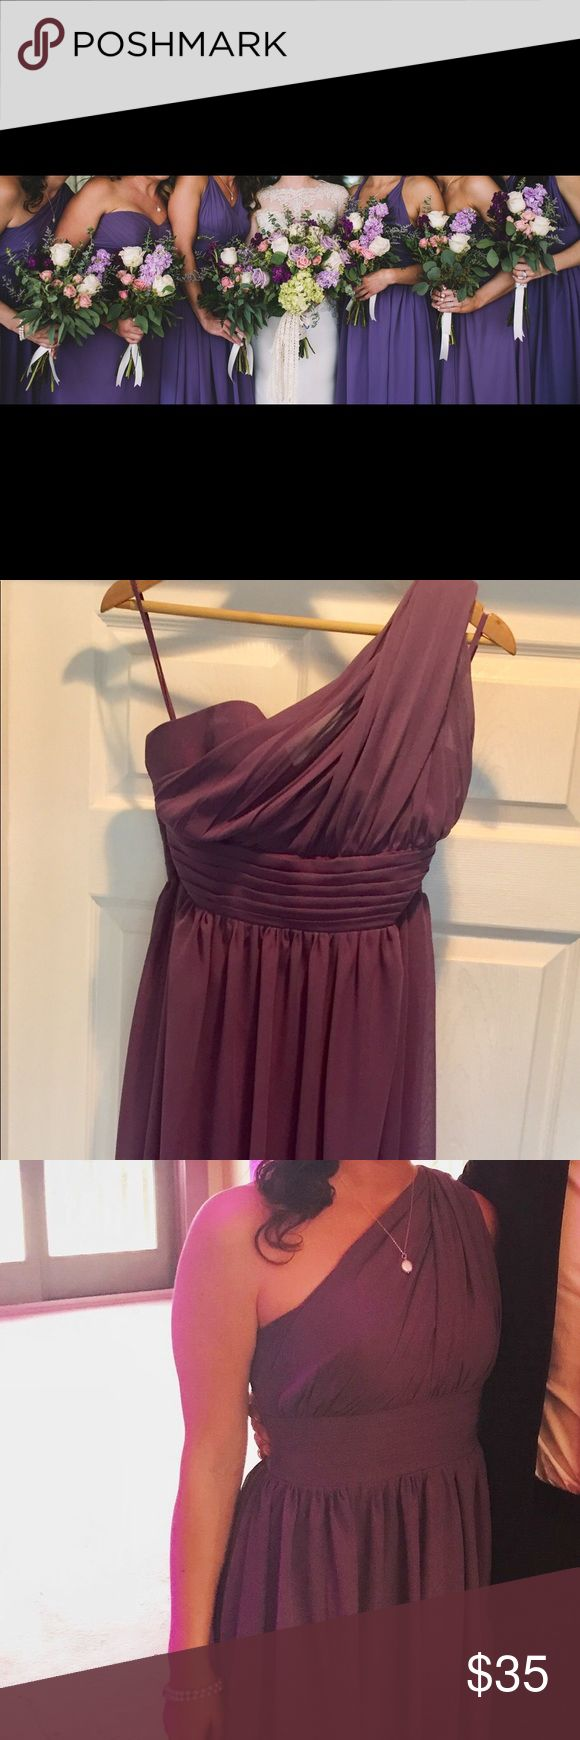 Lavender bridesmaid dress from Etsy Off the shoulder lavender bridesmaid dress measures 54 in from shoulder, worn with 3in heels etsy Dresses One Shoulder